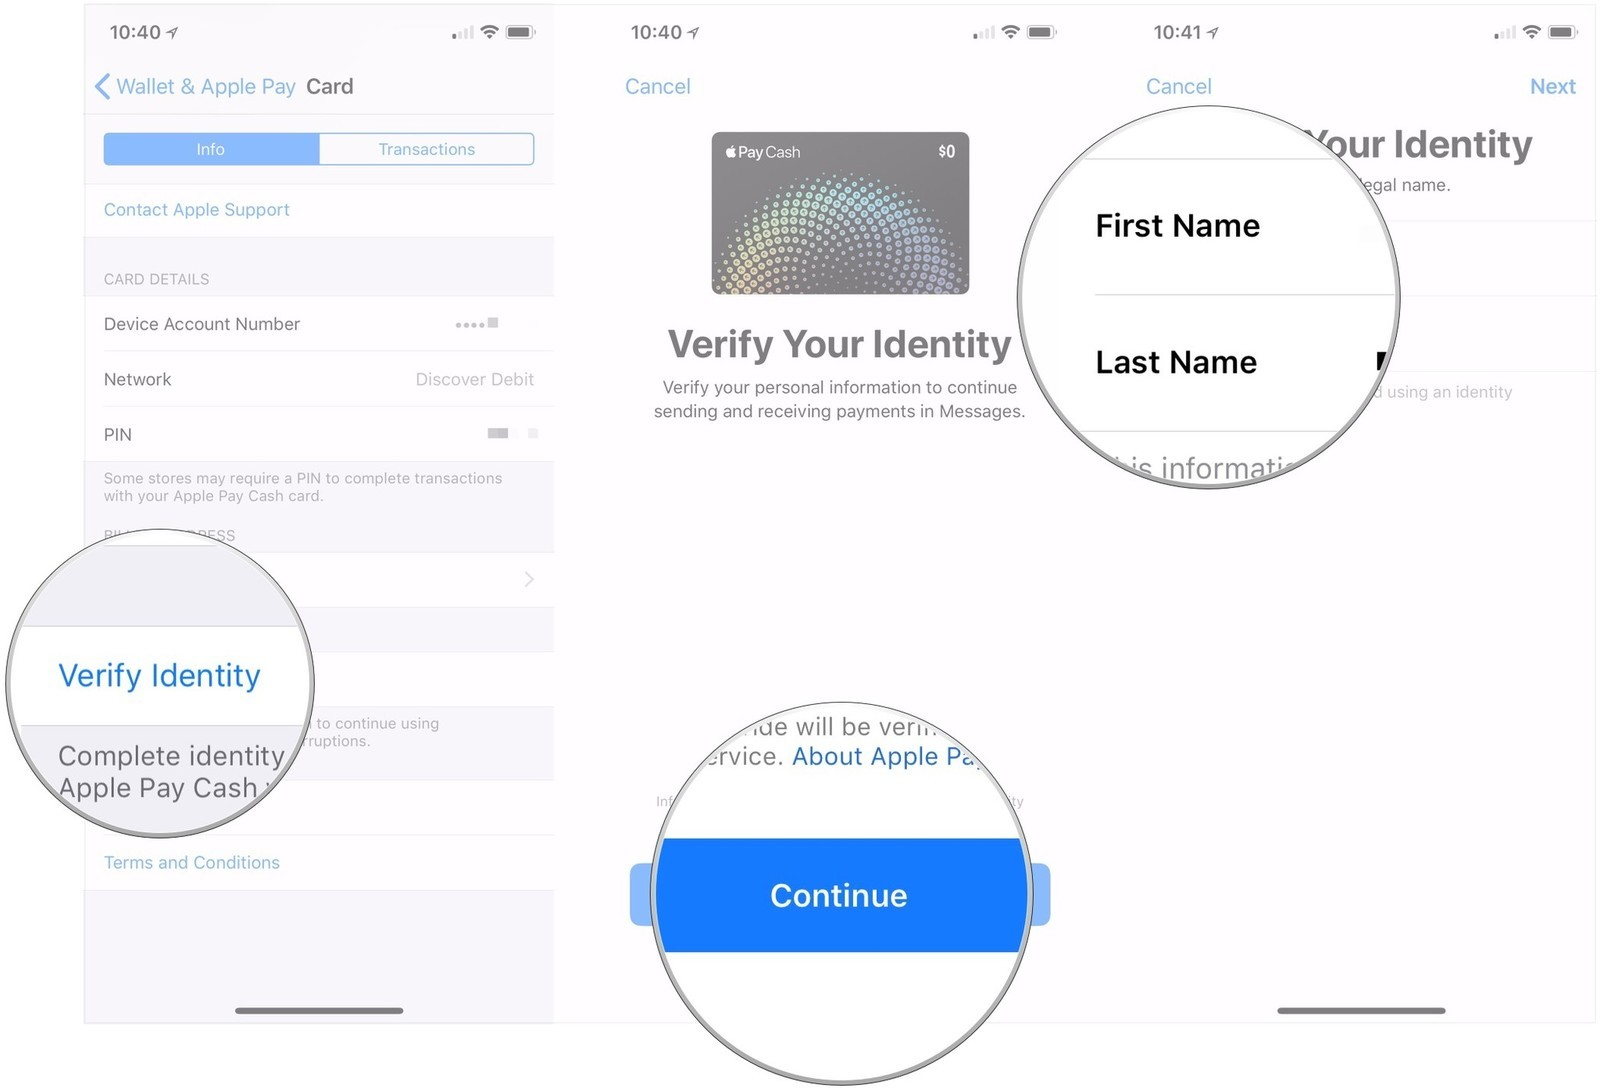 How to Verify Your Identity for Apple Pay?